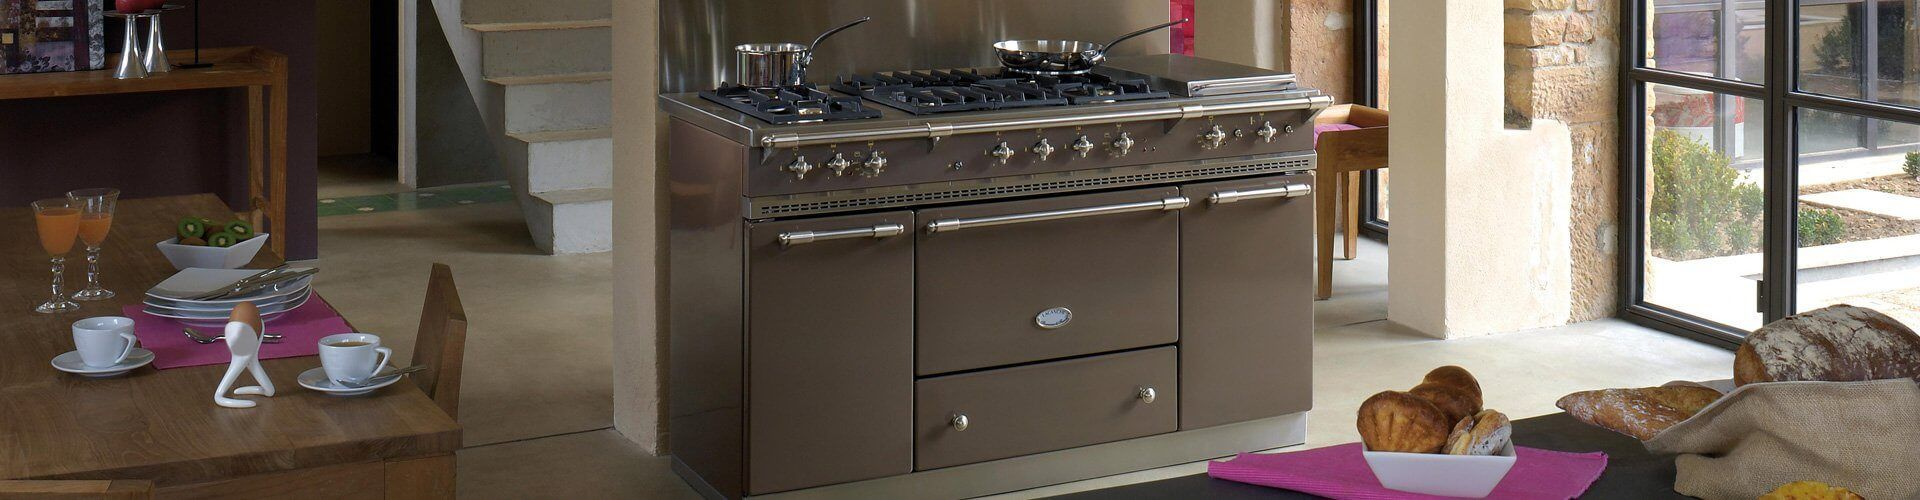 Home Of Cooking Stoves